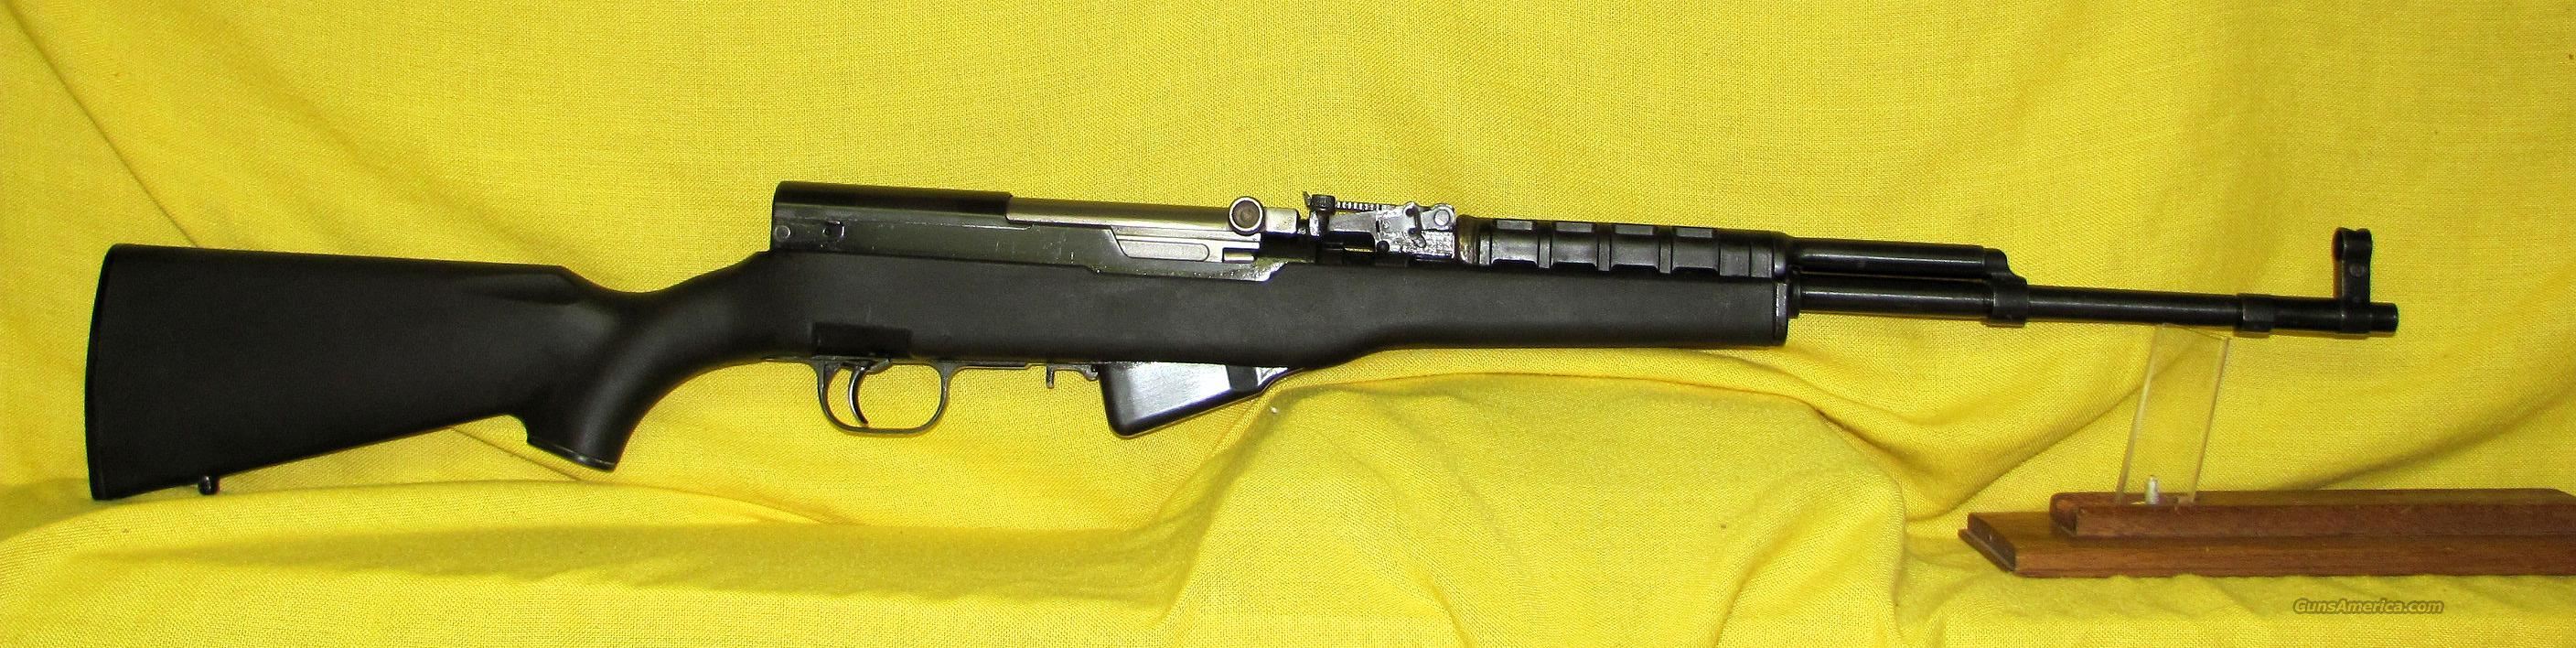 NORINCO SKS  Guns > Rifles > SKS Rifles